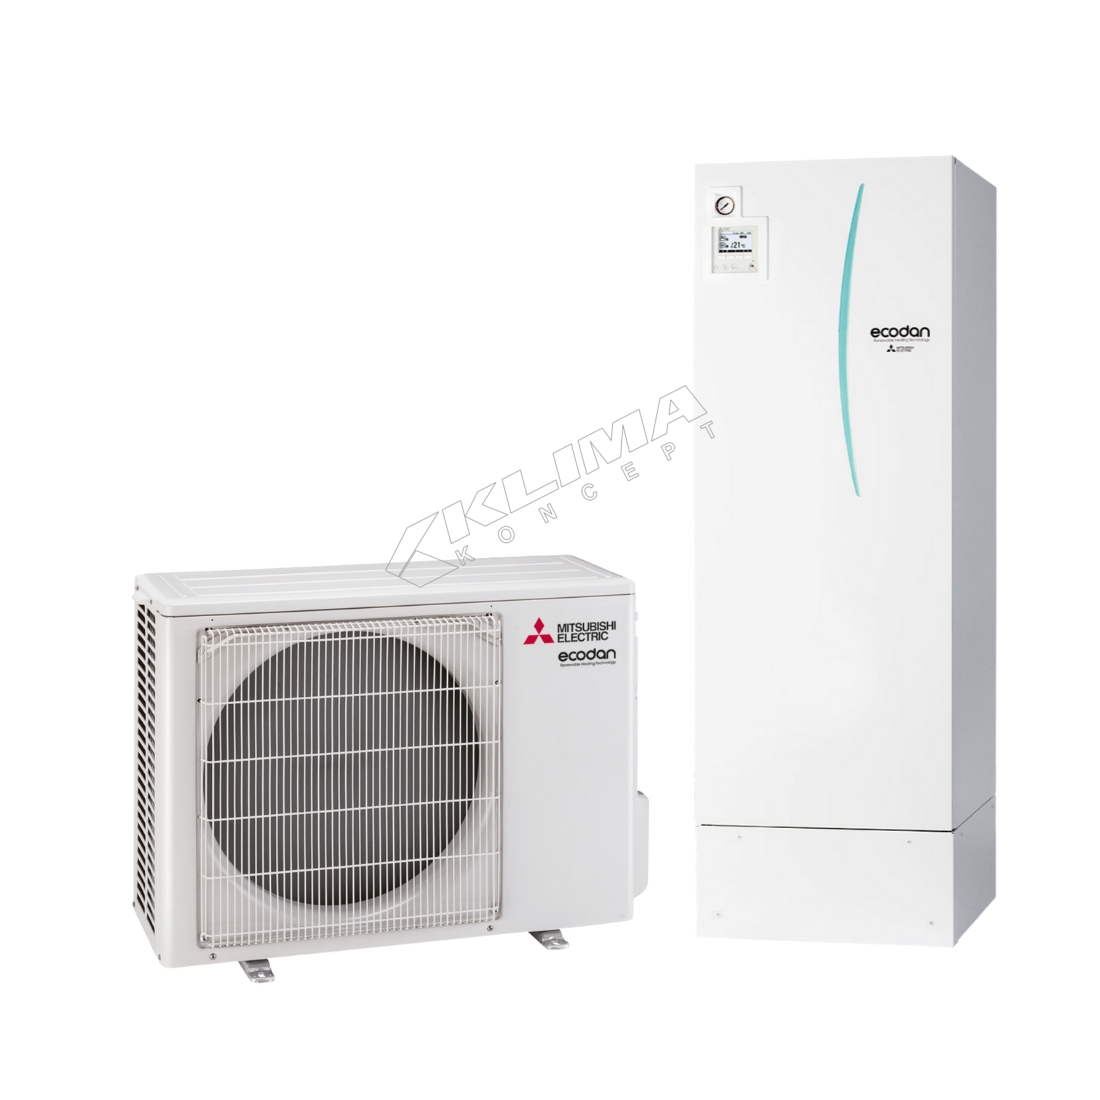 Mitsubishi Electric Ecodan - Set PUHZ-SW50VKA/ERST20D-VM2/PAC-TH011-E